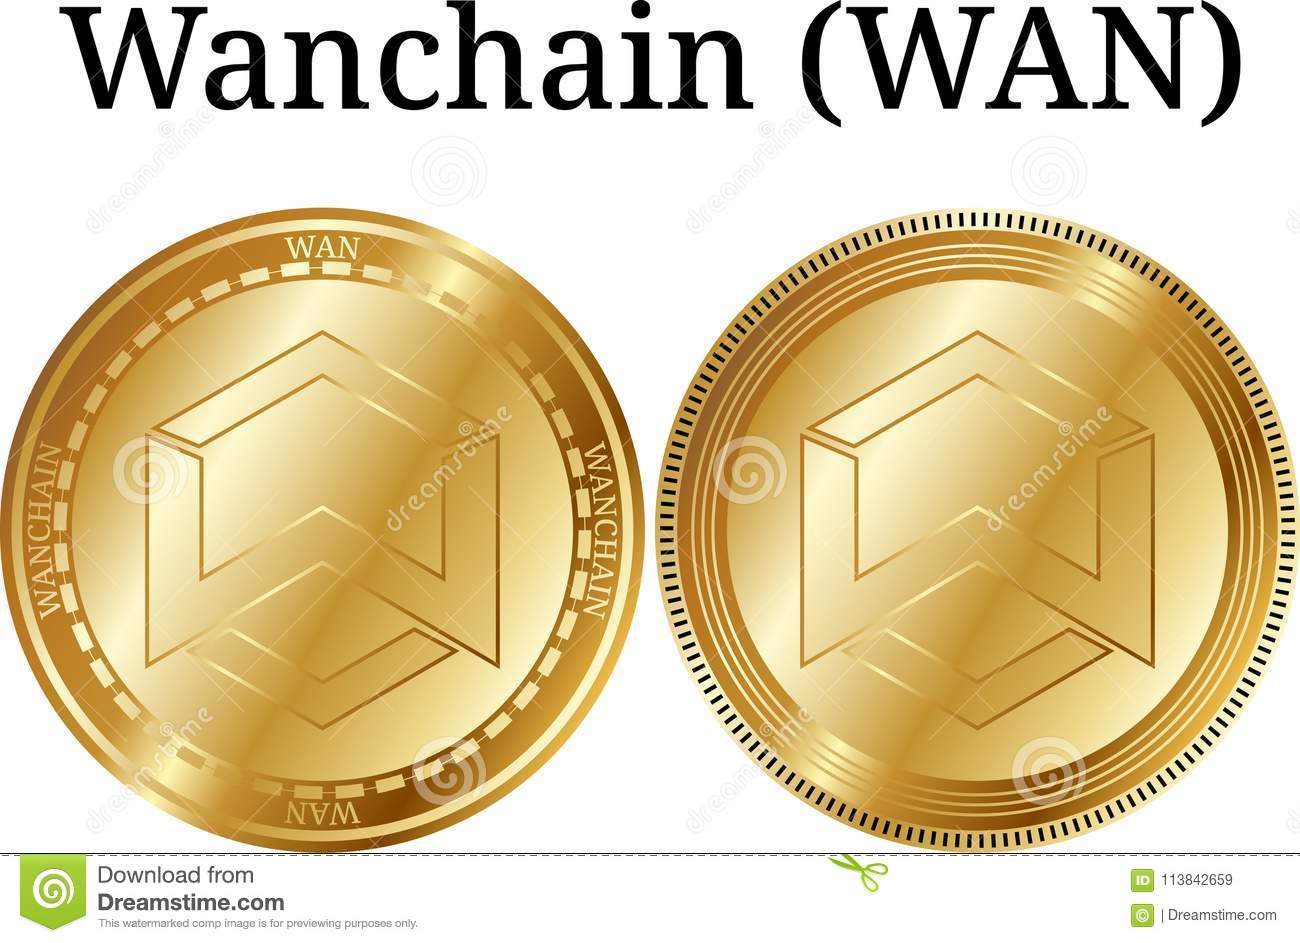 how do i buy wan cryptocurrency